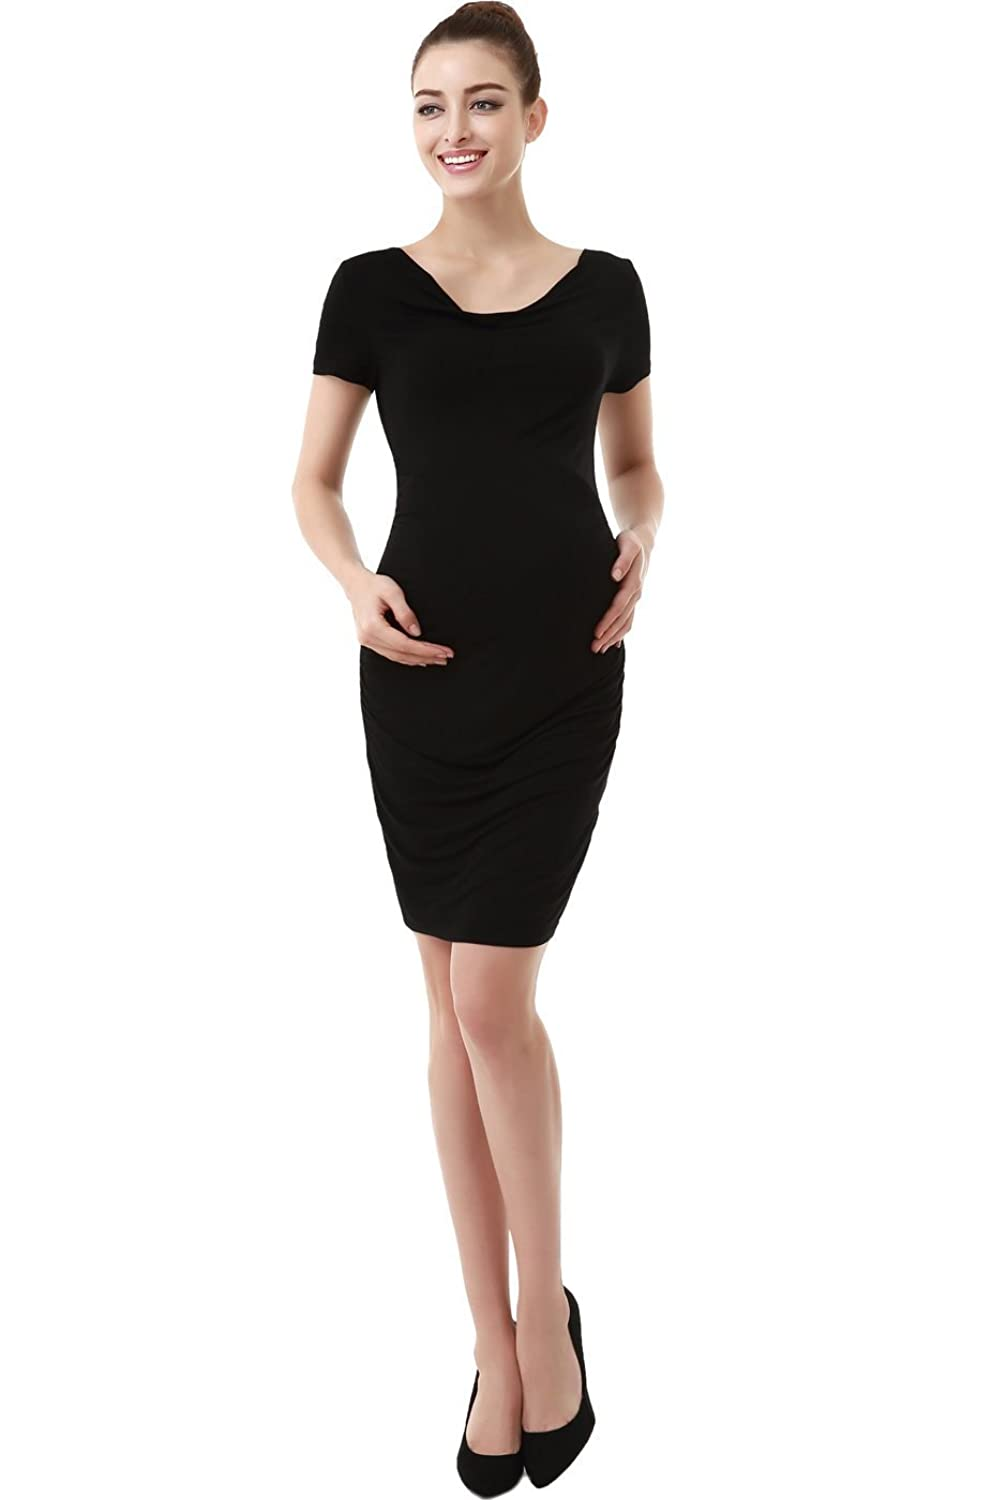 Momo Maternity Kate Cowl Neck Ruched Midi Dress momo xuhaoying 009